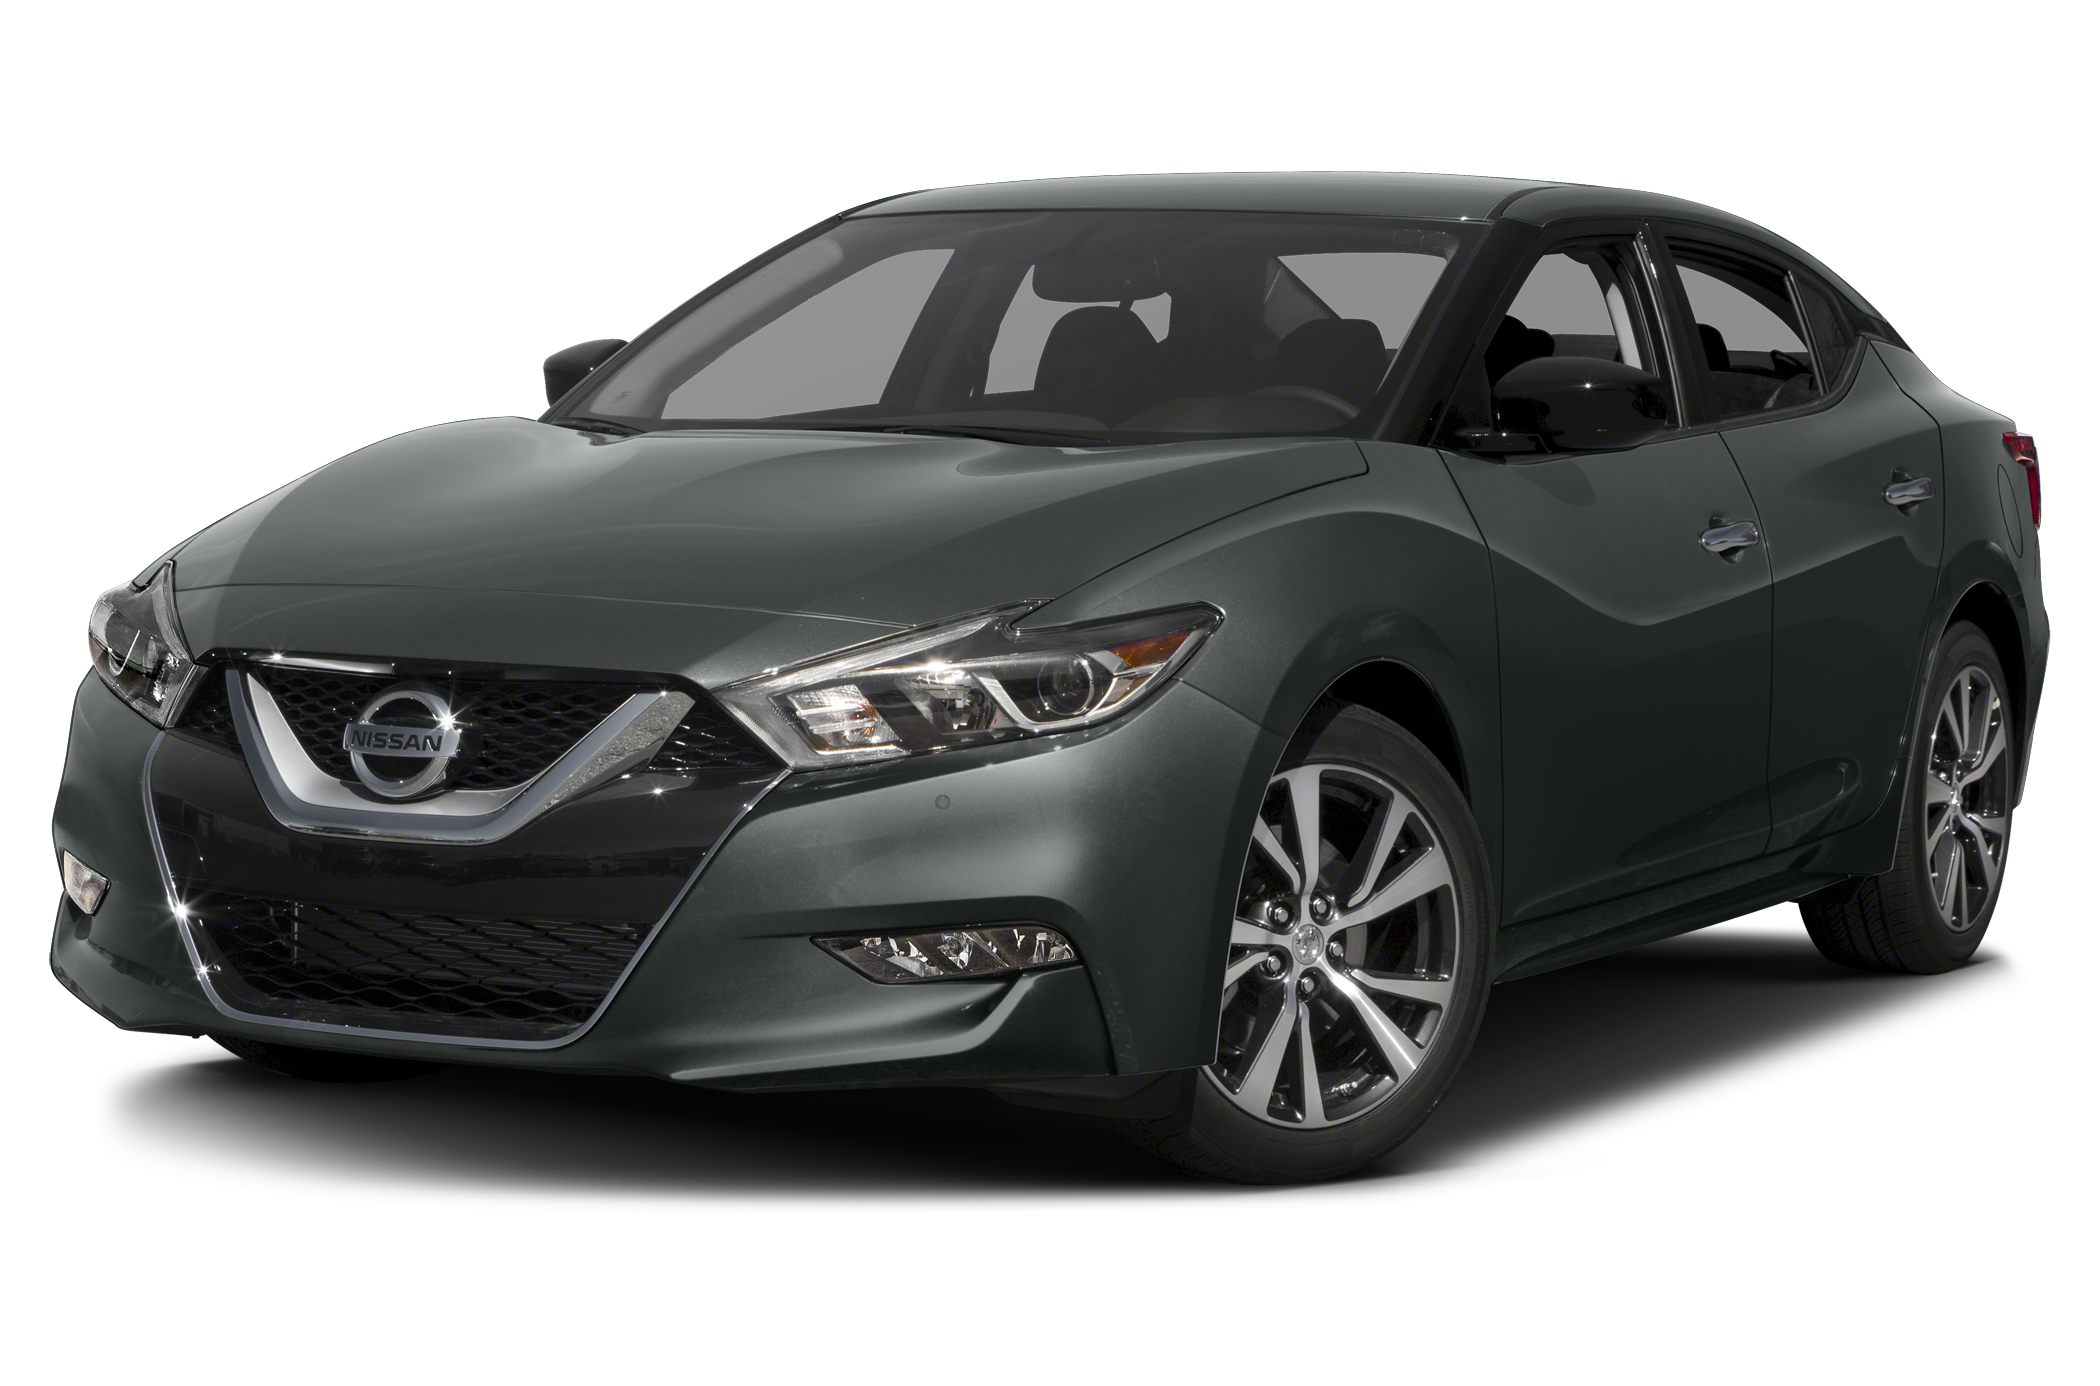 2016 Nissan Maxima 35 S Miles 23606Color Black Stock 431610 VIN 1N4AA6A